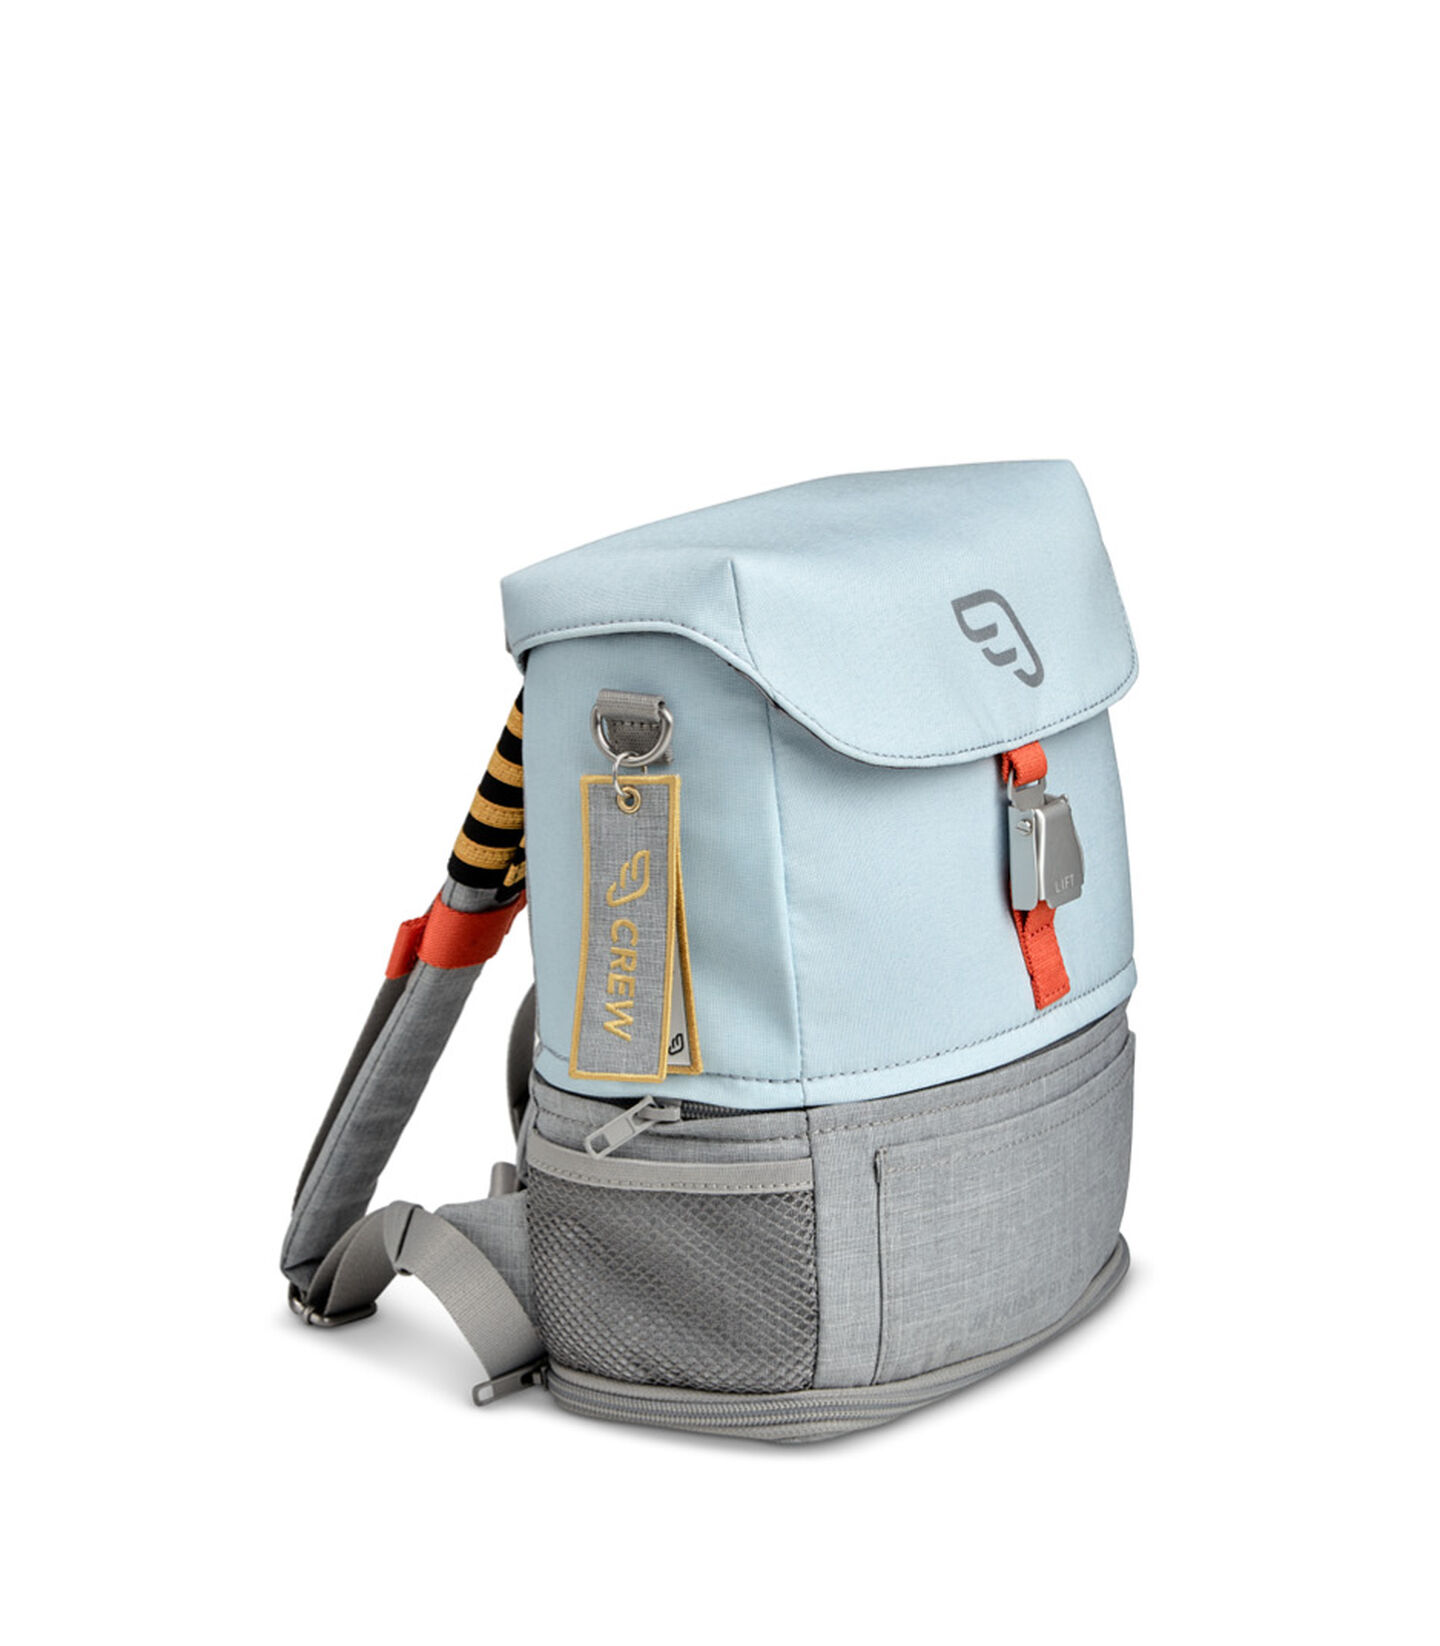 JETKIDS Crew Backpack Blue Sky, Blue Sky, mainview view 2